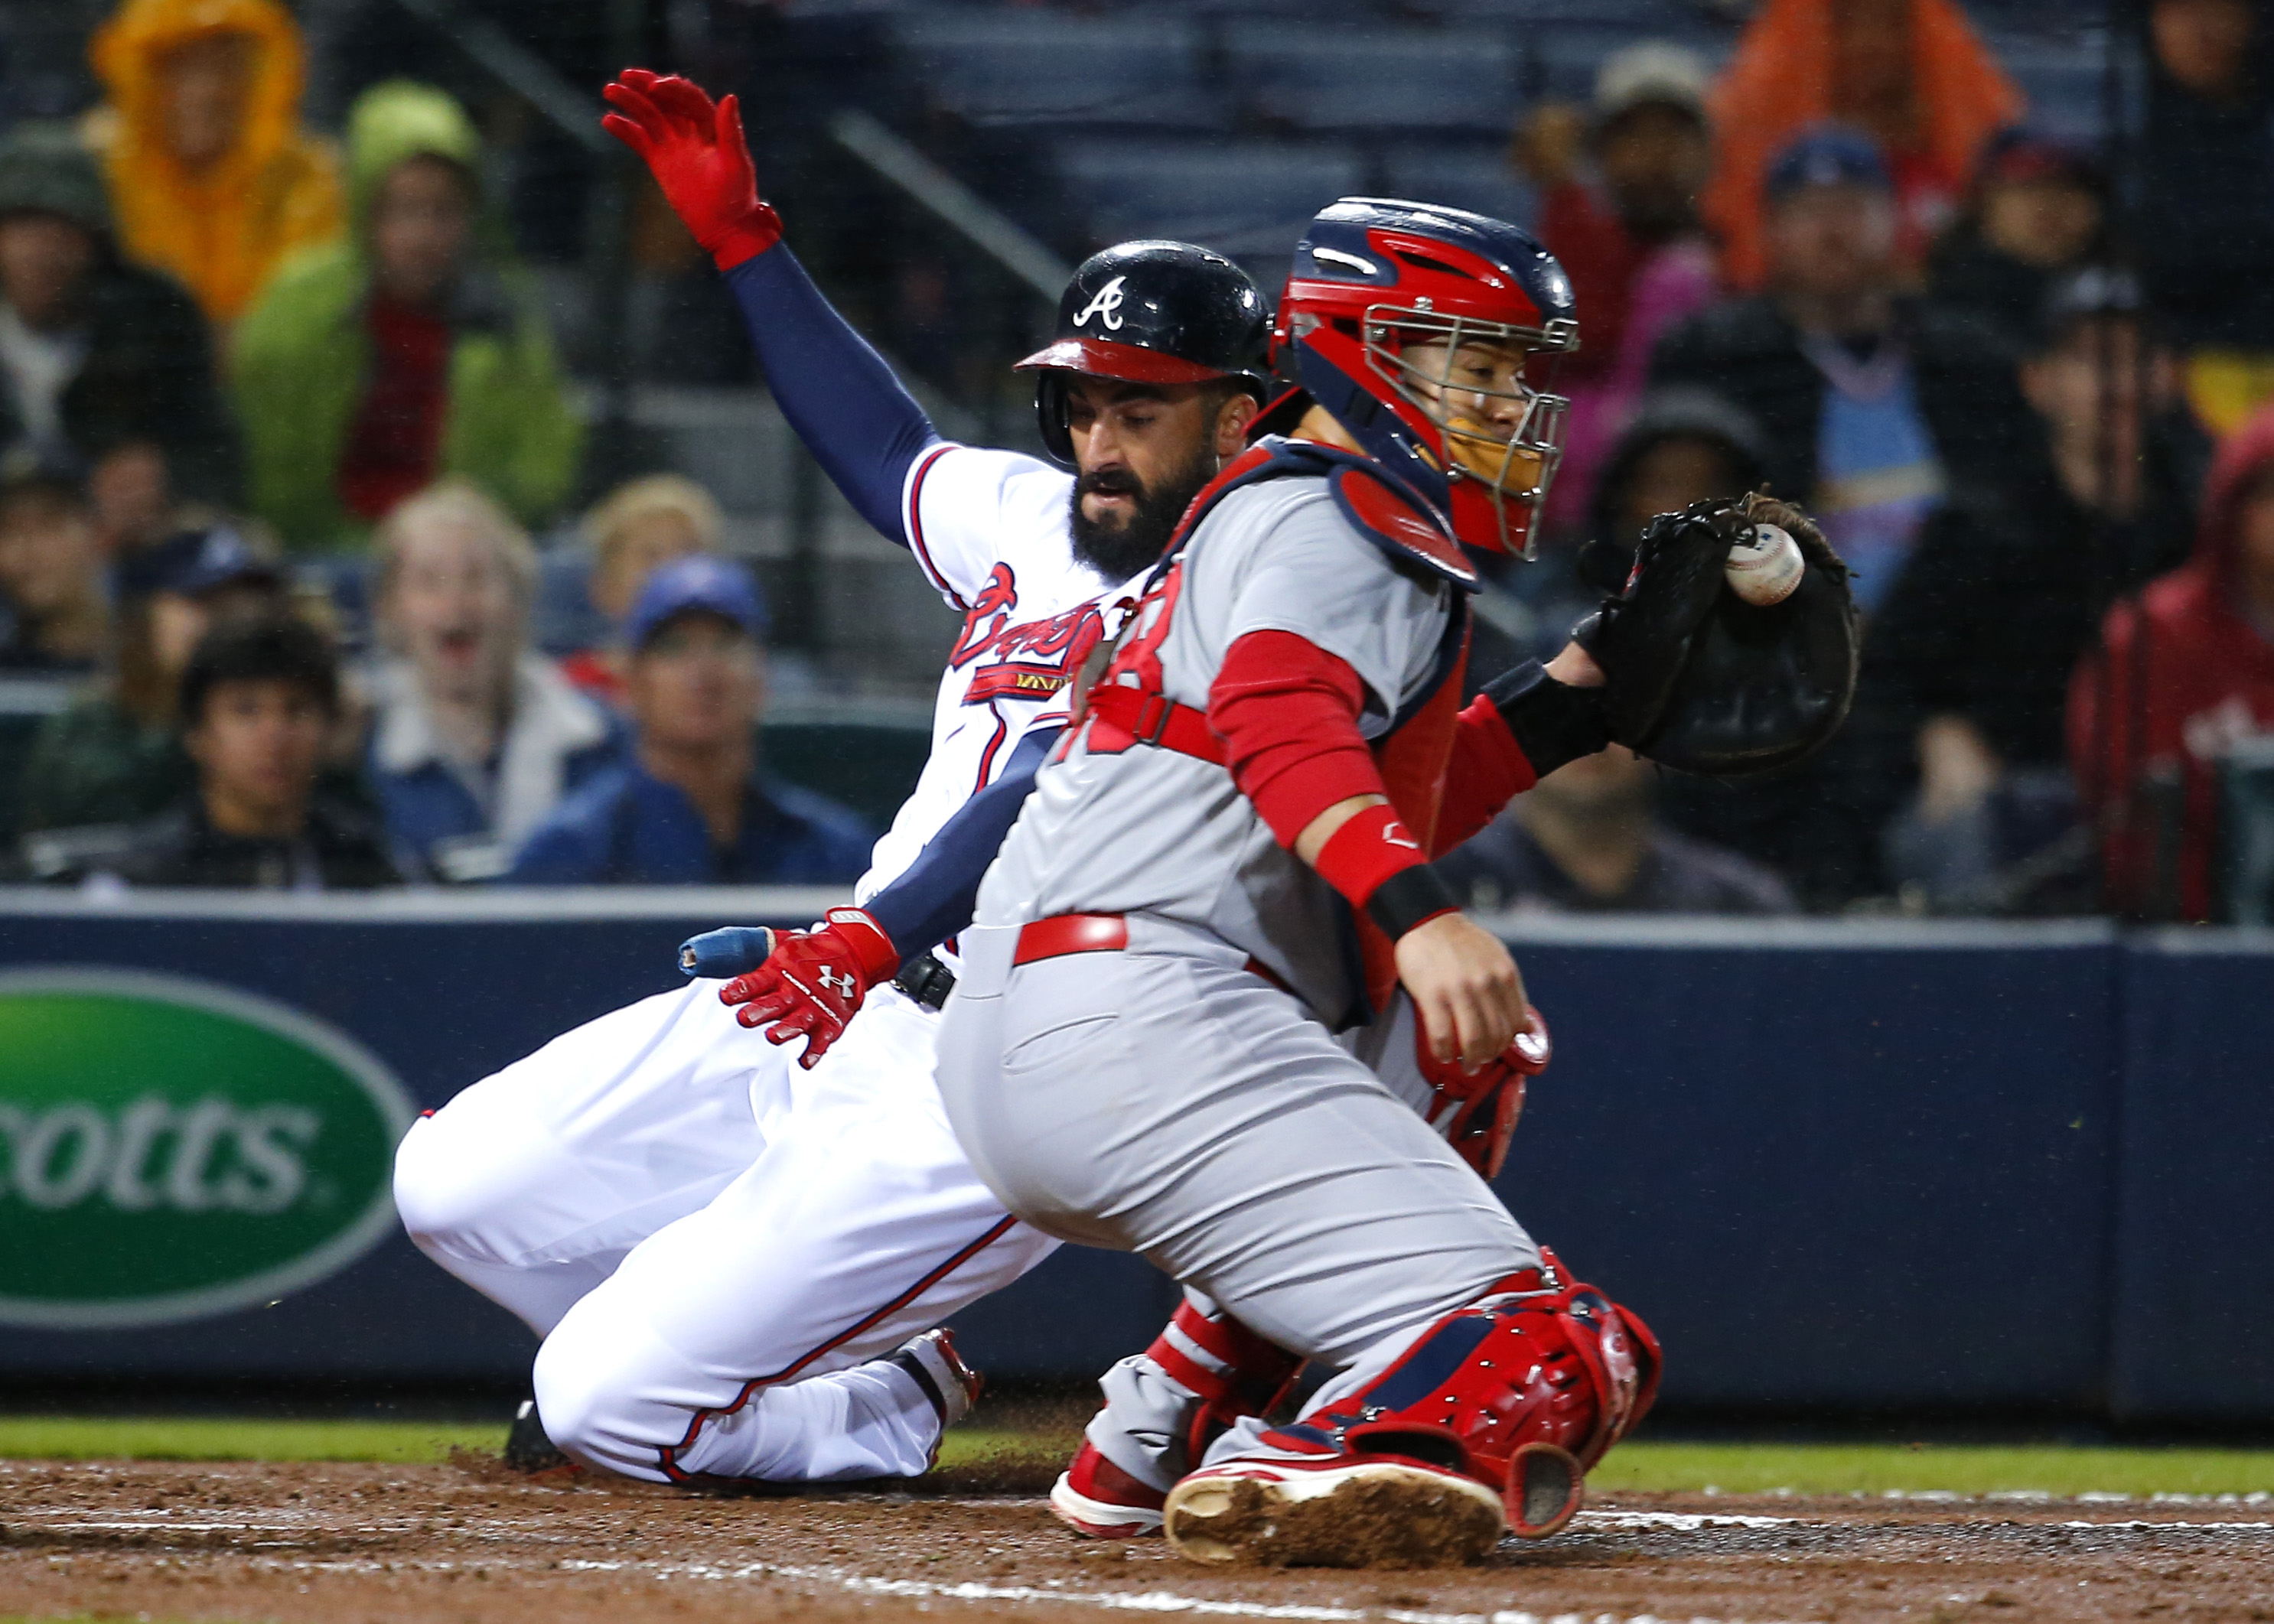 Atlanta Braves Nick Markakis slides in under the tag of St. Louis Cardinals catcher Tony Cruz (48) to score off the double of A.J. Pierzynski in the third inning of a baseball game against the St. Louis Cardinals, Friday, Oct. 2, 2015, in Atlanta. (AP Pho